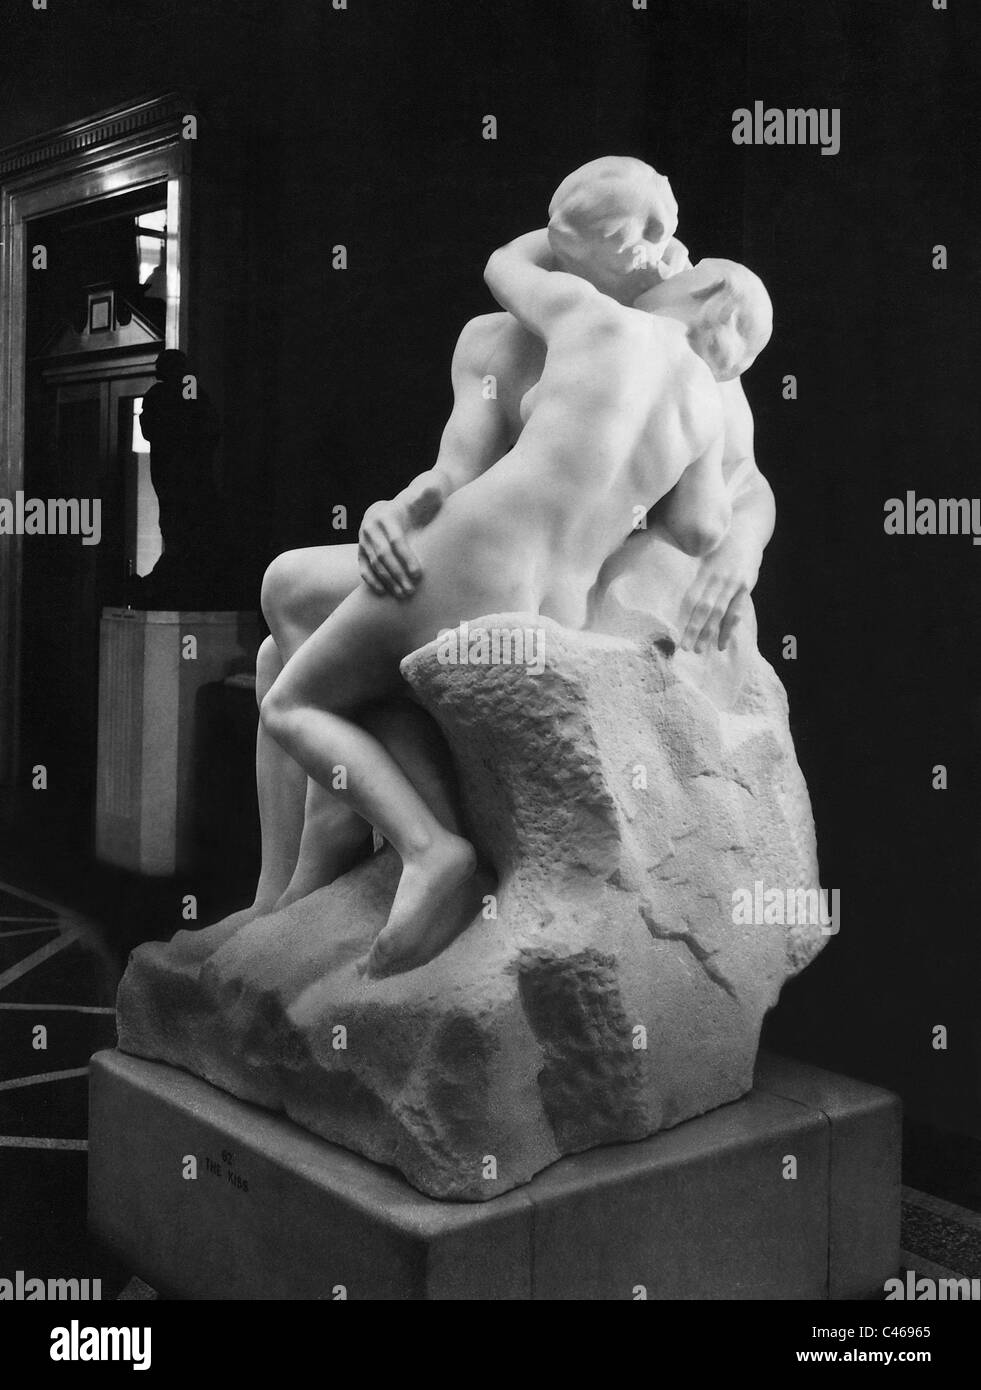 Sculpture 'The Kiss' by Auguste Rodin - Stock Image